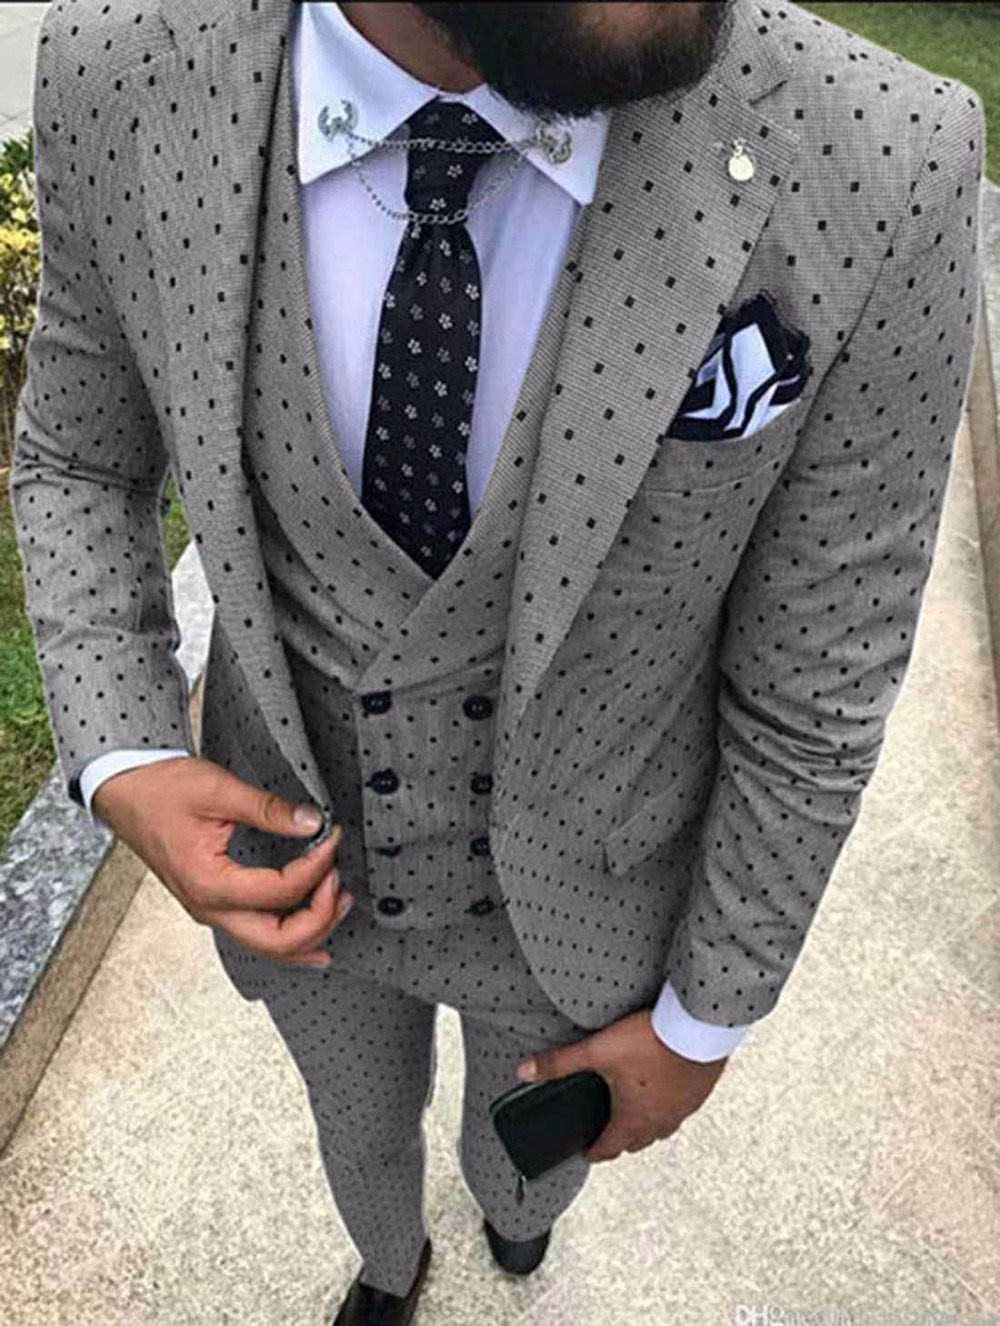 HTB1L93mTVzqK1RjSZFoq6zfcXXam 2019 Men's Poika dot Suit 3 Pieces latest coat pant designs Notch Lapel Tuxedos Groomsmen For Wedding/party(Blazer+vest+Pants)